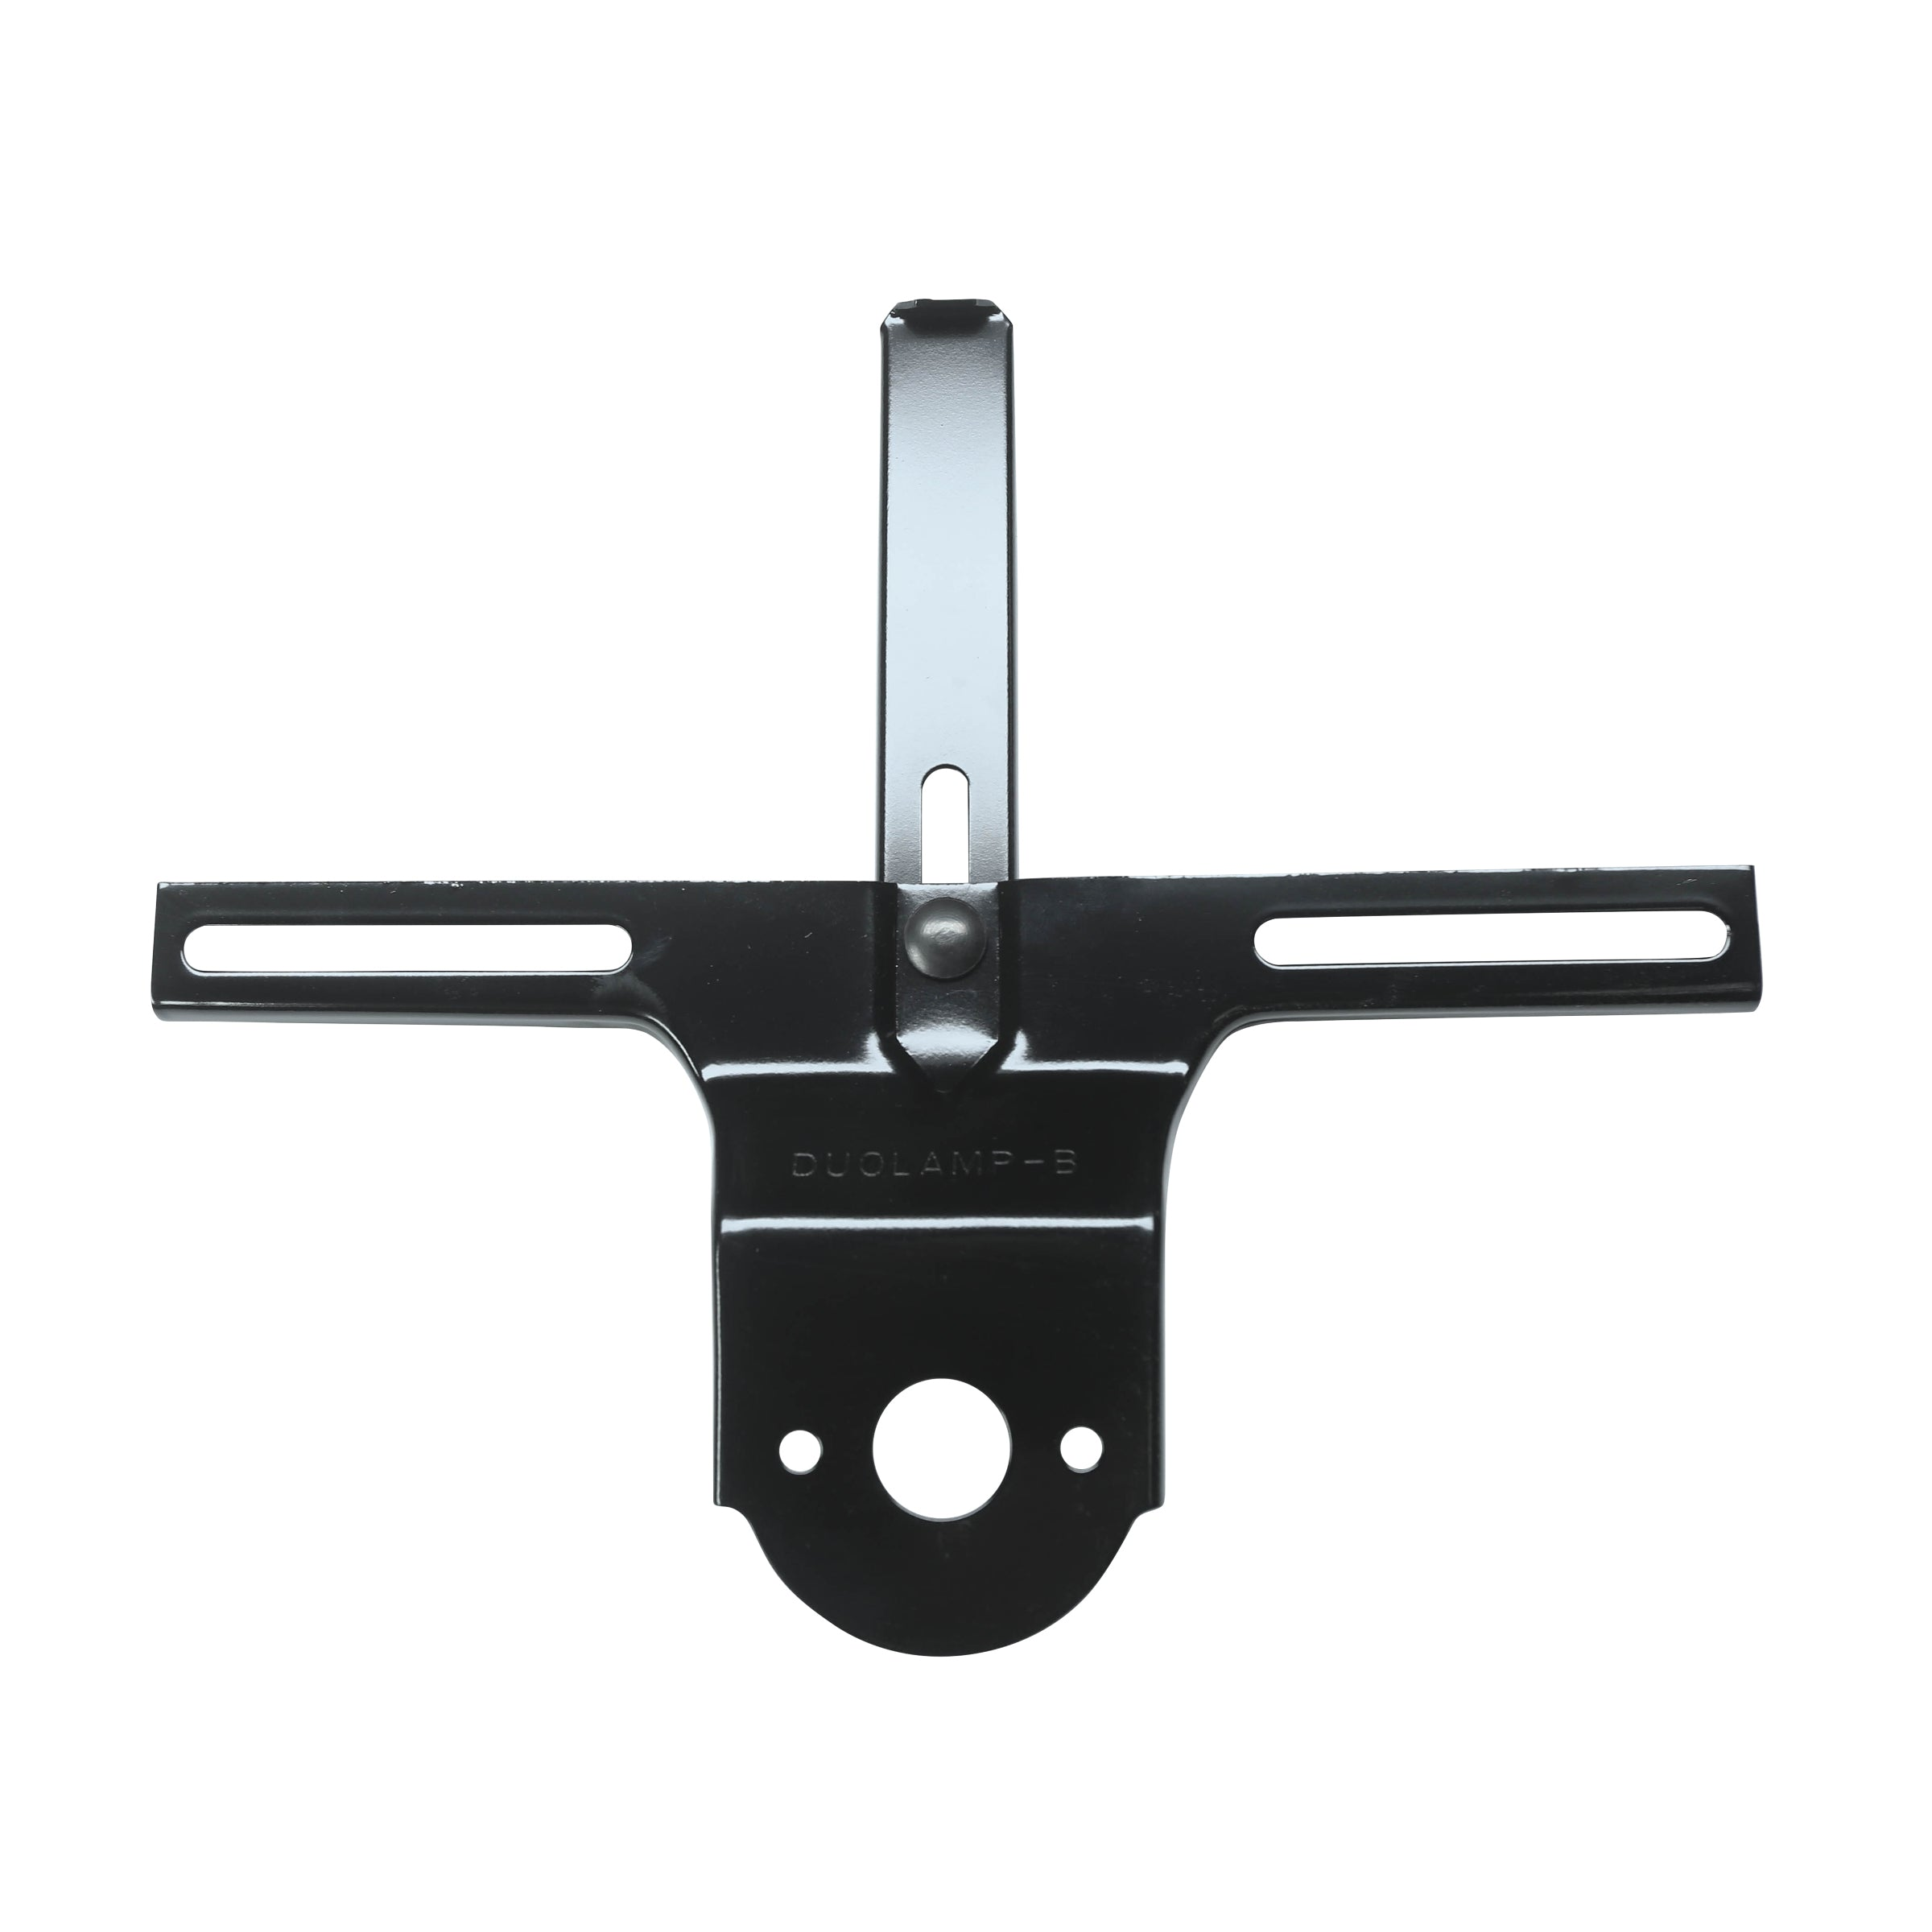 License Plate Bracket (Rear - Black) • 1933-36 Passenger